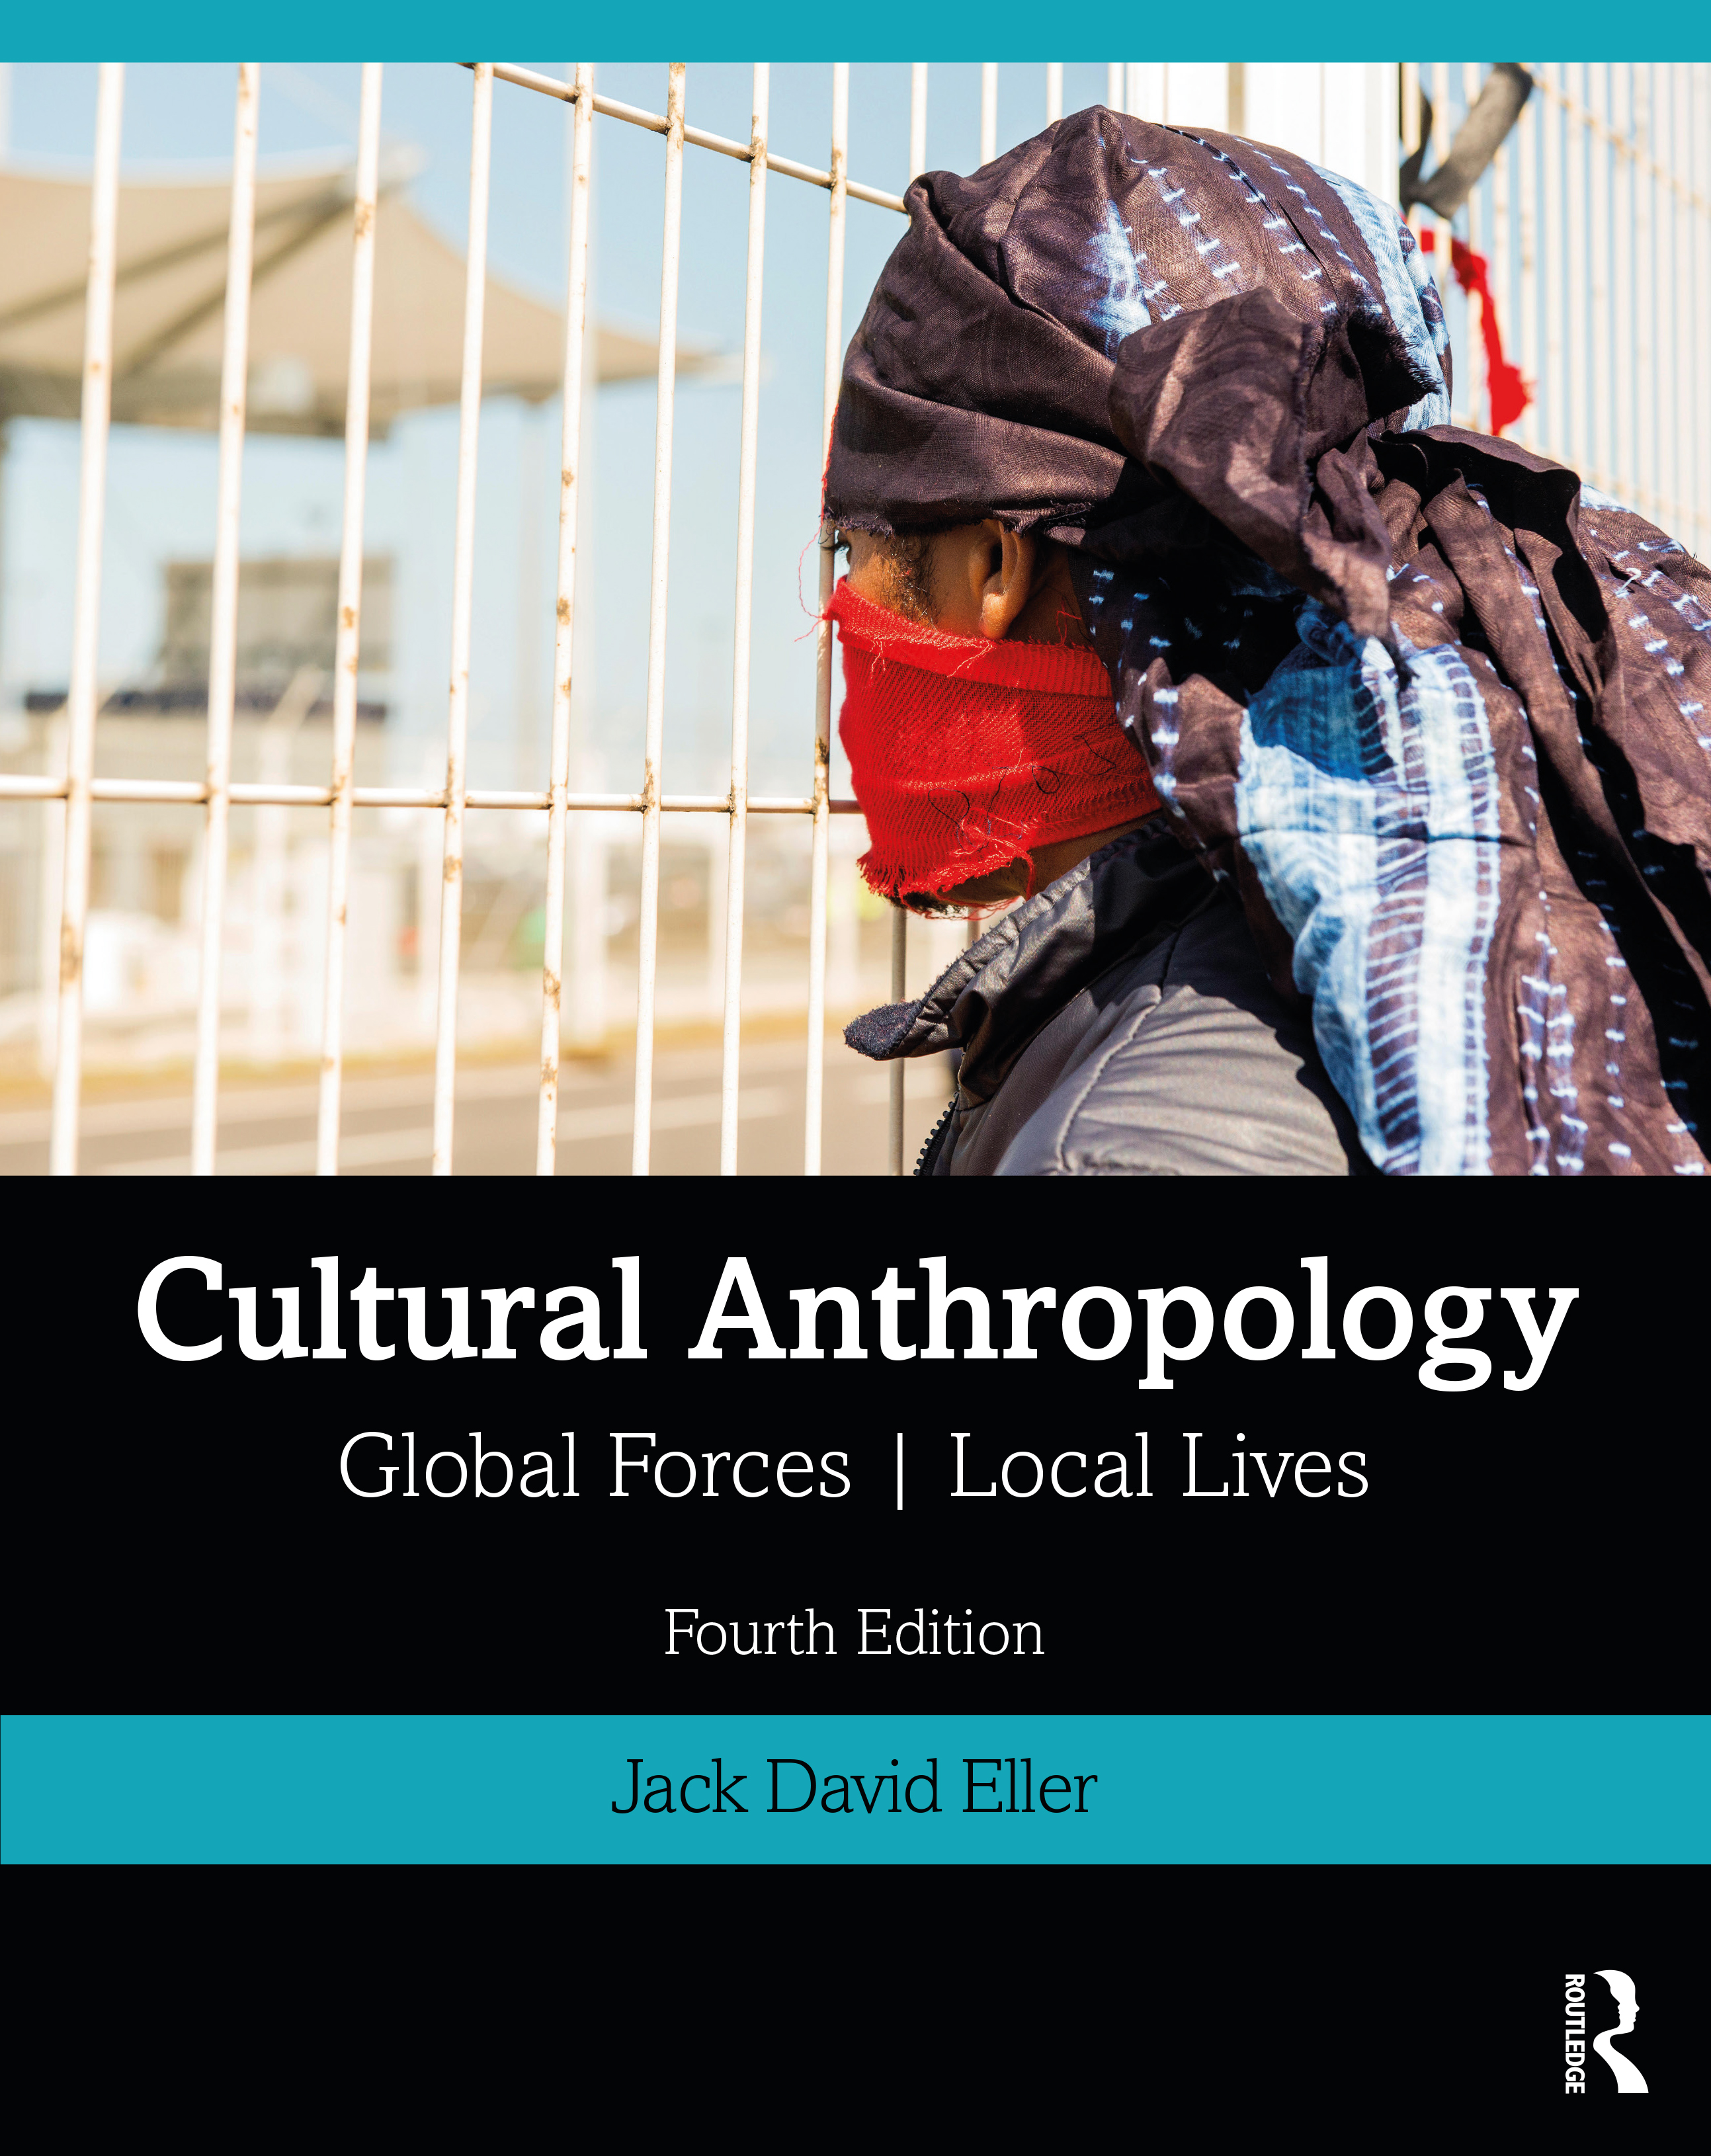 Cultural Anthropology: Global Forces, Local Lives book cover